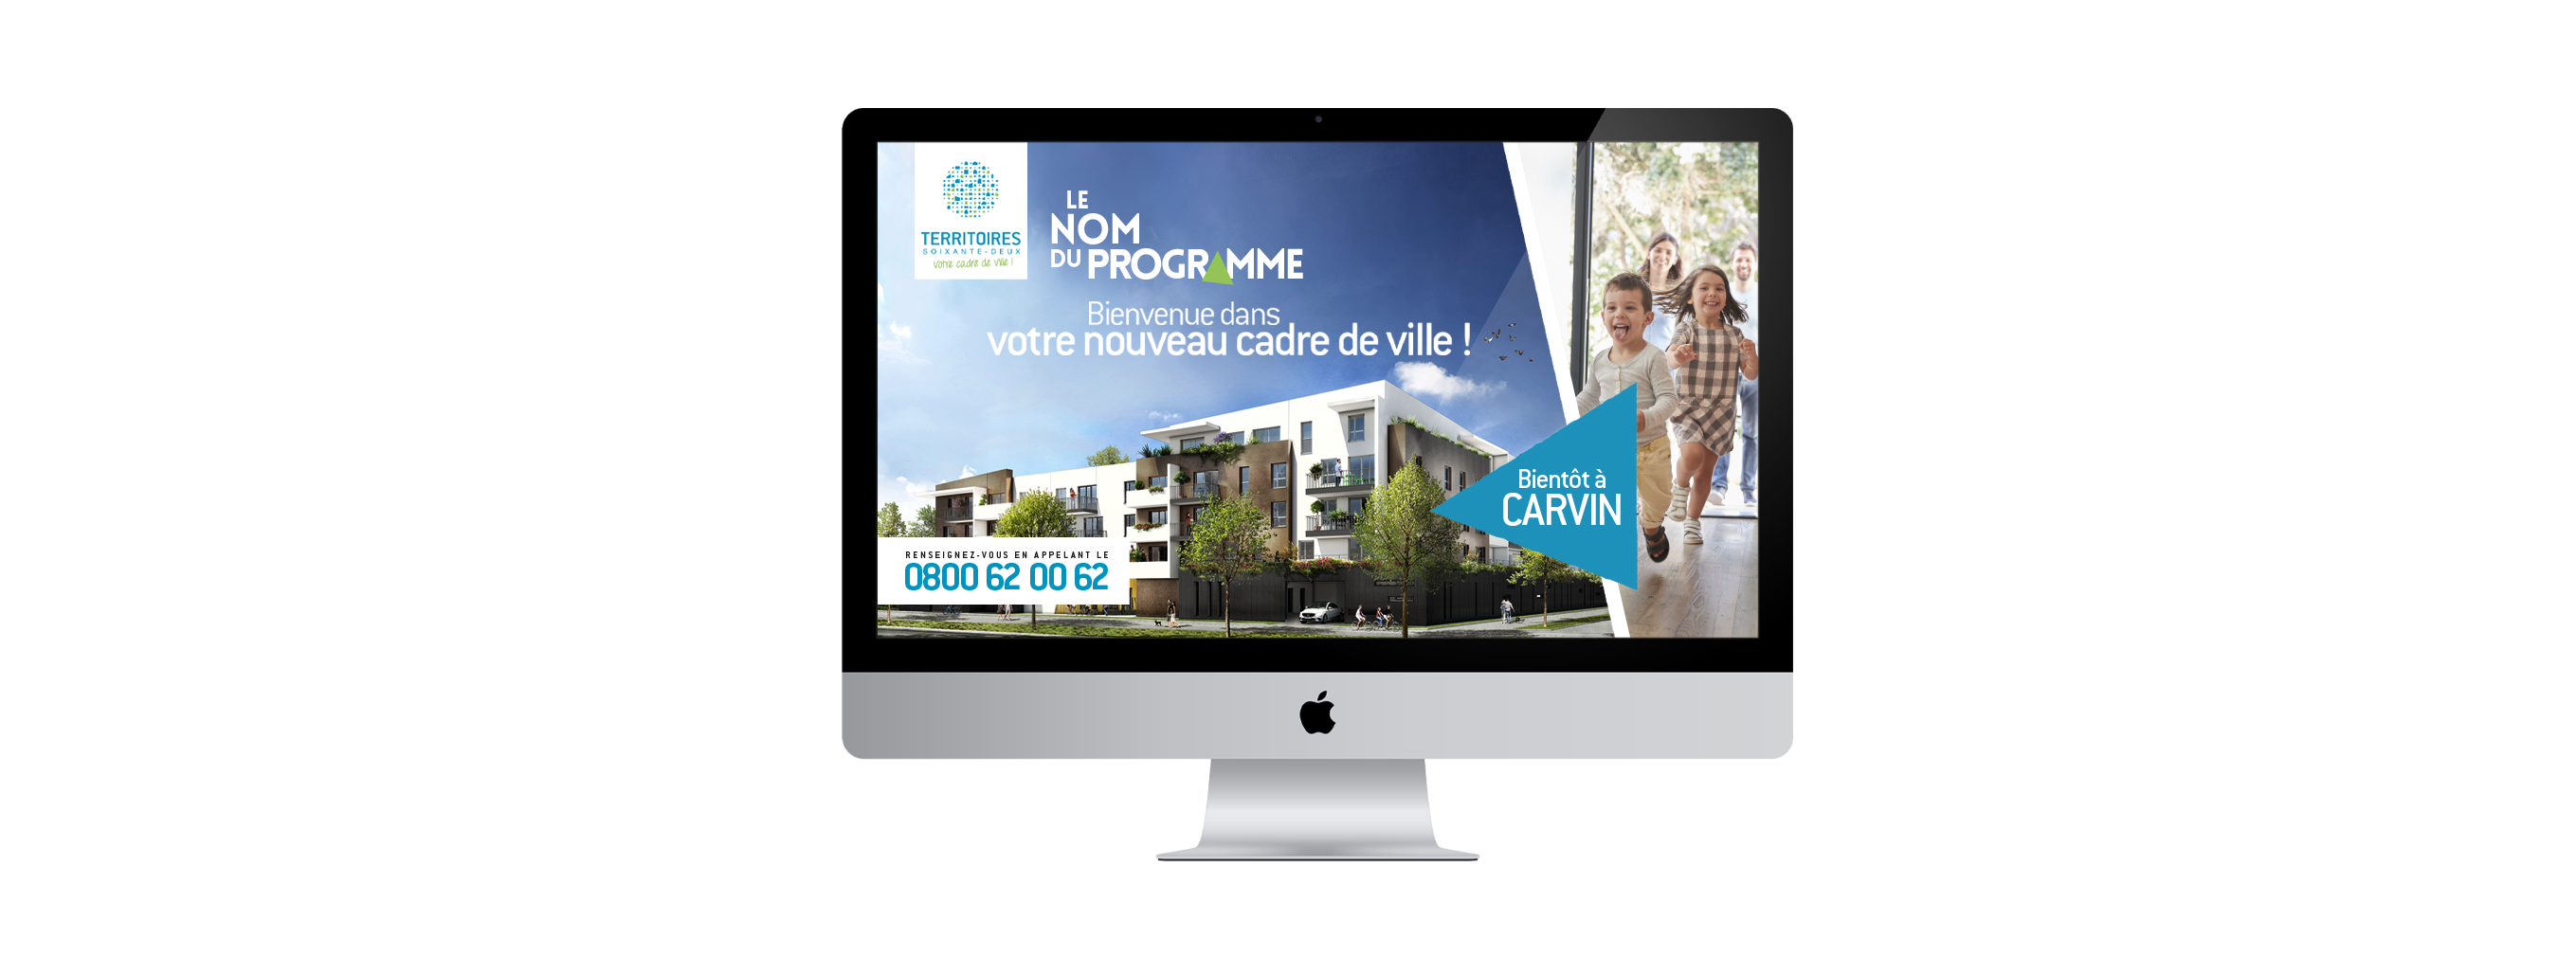 Territoires 62 Web design Little Big Idea